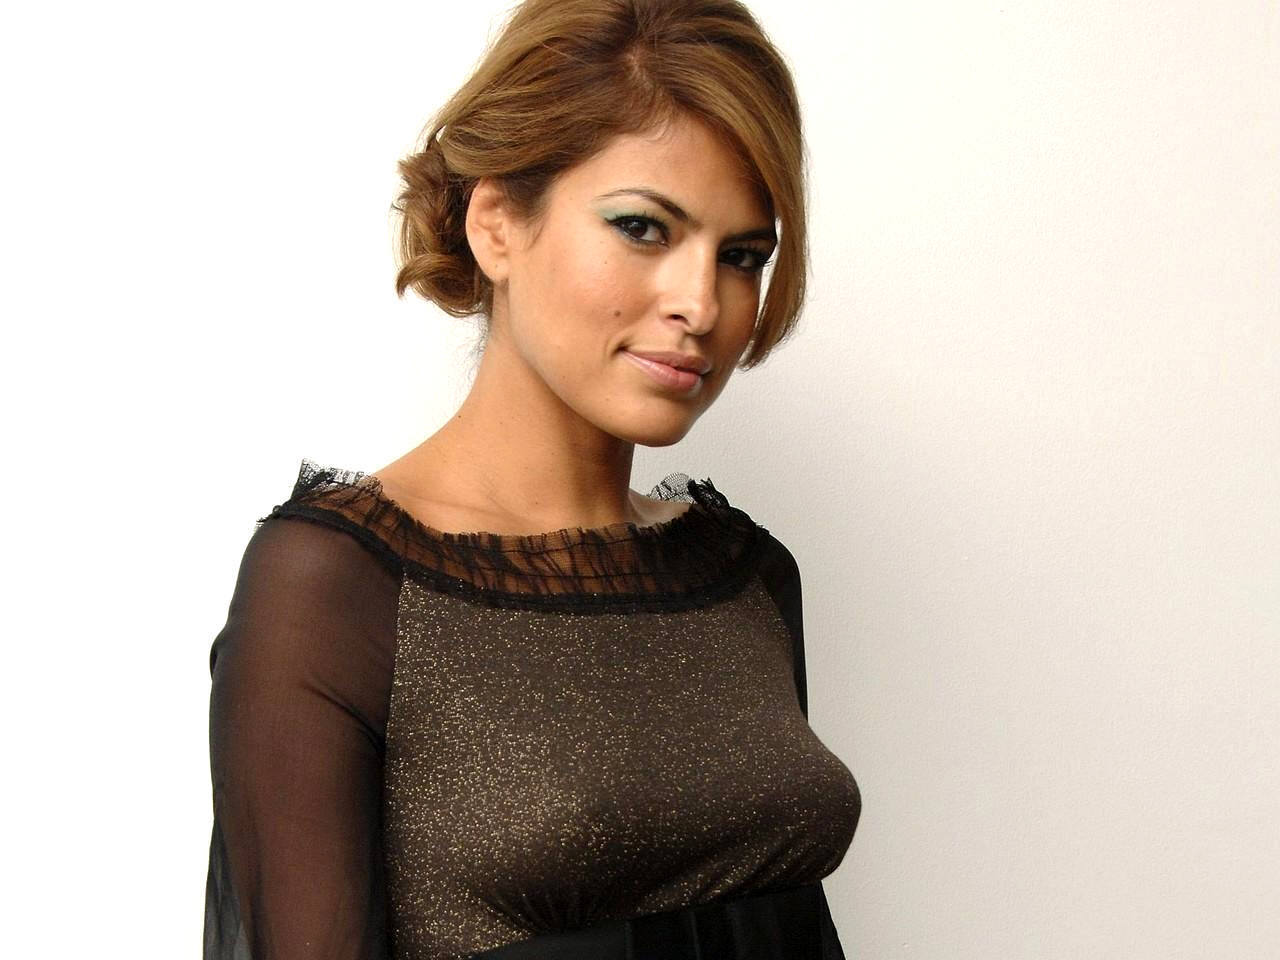 nude-eva-mendes-free-porn-videos-lawrence-sex-video